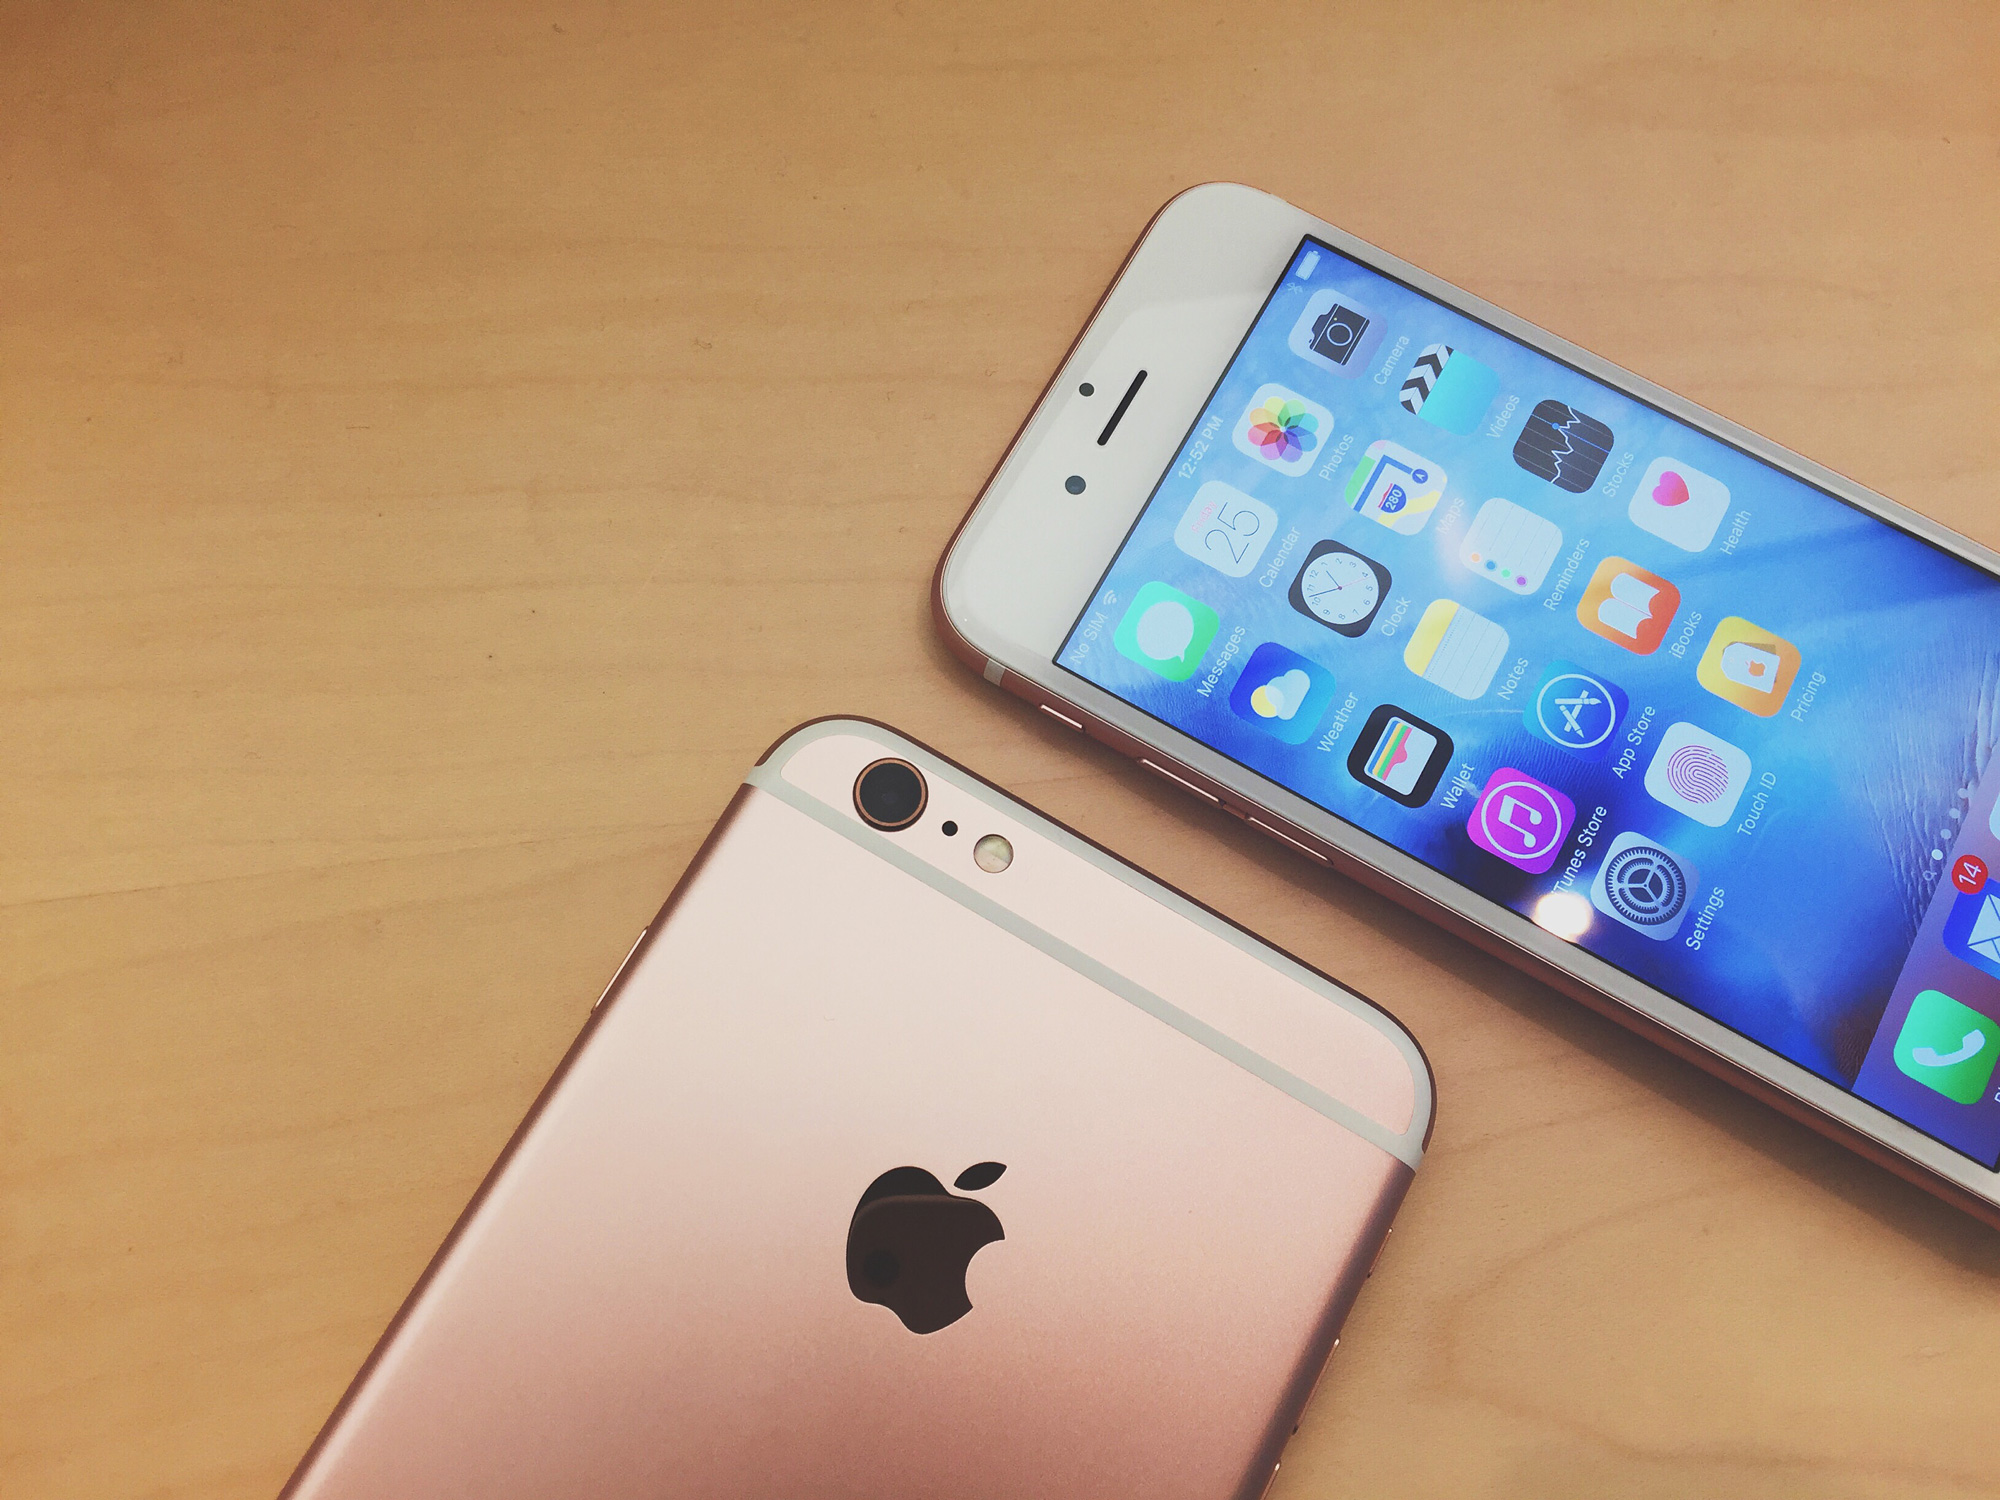 New iPhone 6s Colour Rose Gold